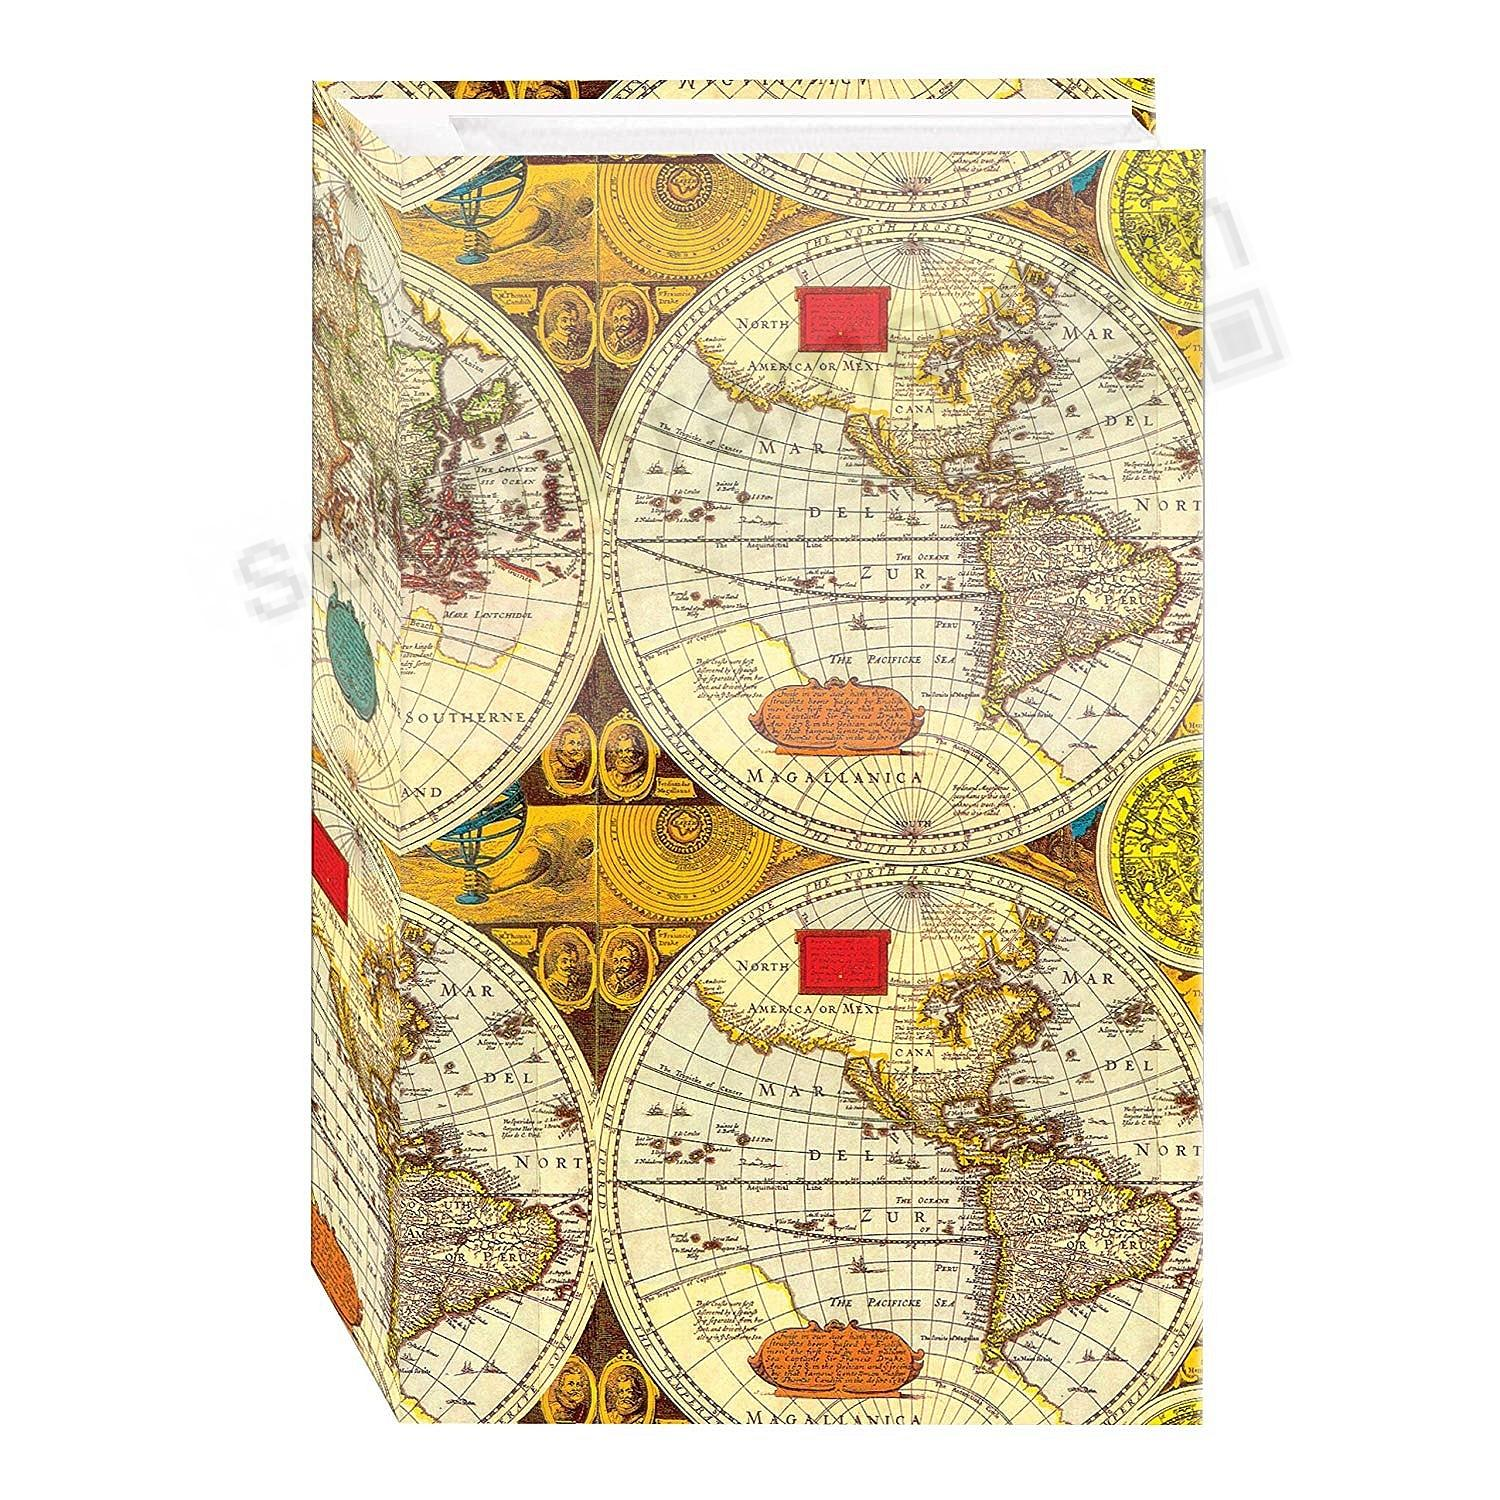 3-ring 3-up slip-in pocket ANCIENT WORLD MAP album ready for 500+ photos